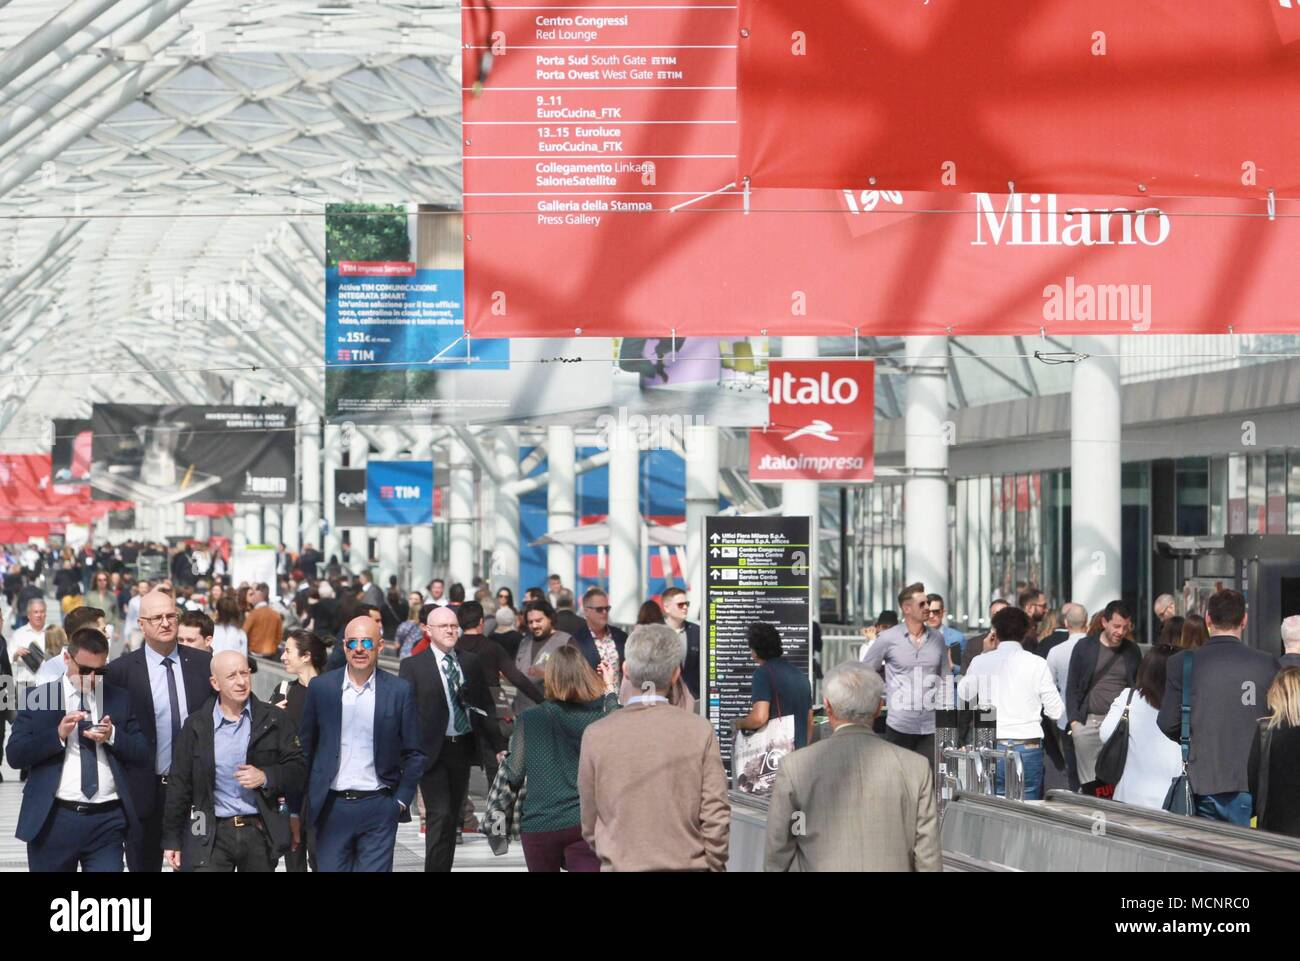 Milan, Italy. 17th April 2018. INAUGURATION OF THE SALONE DEL MOBILE ...